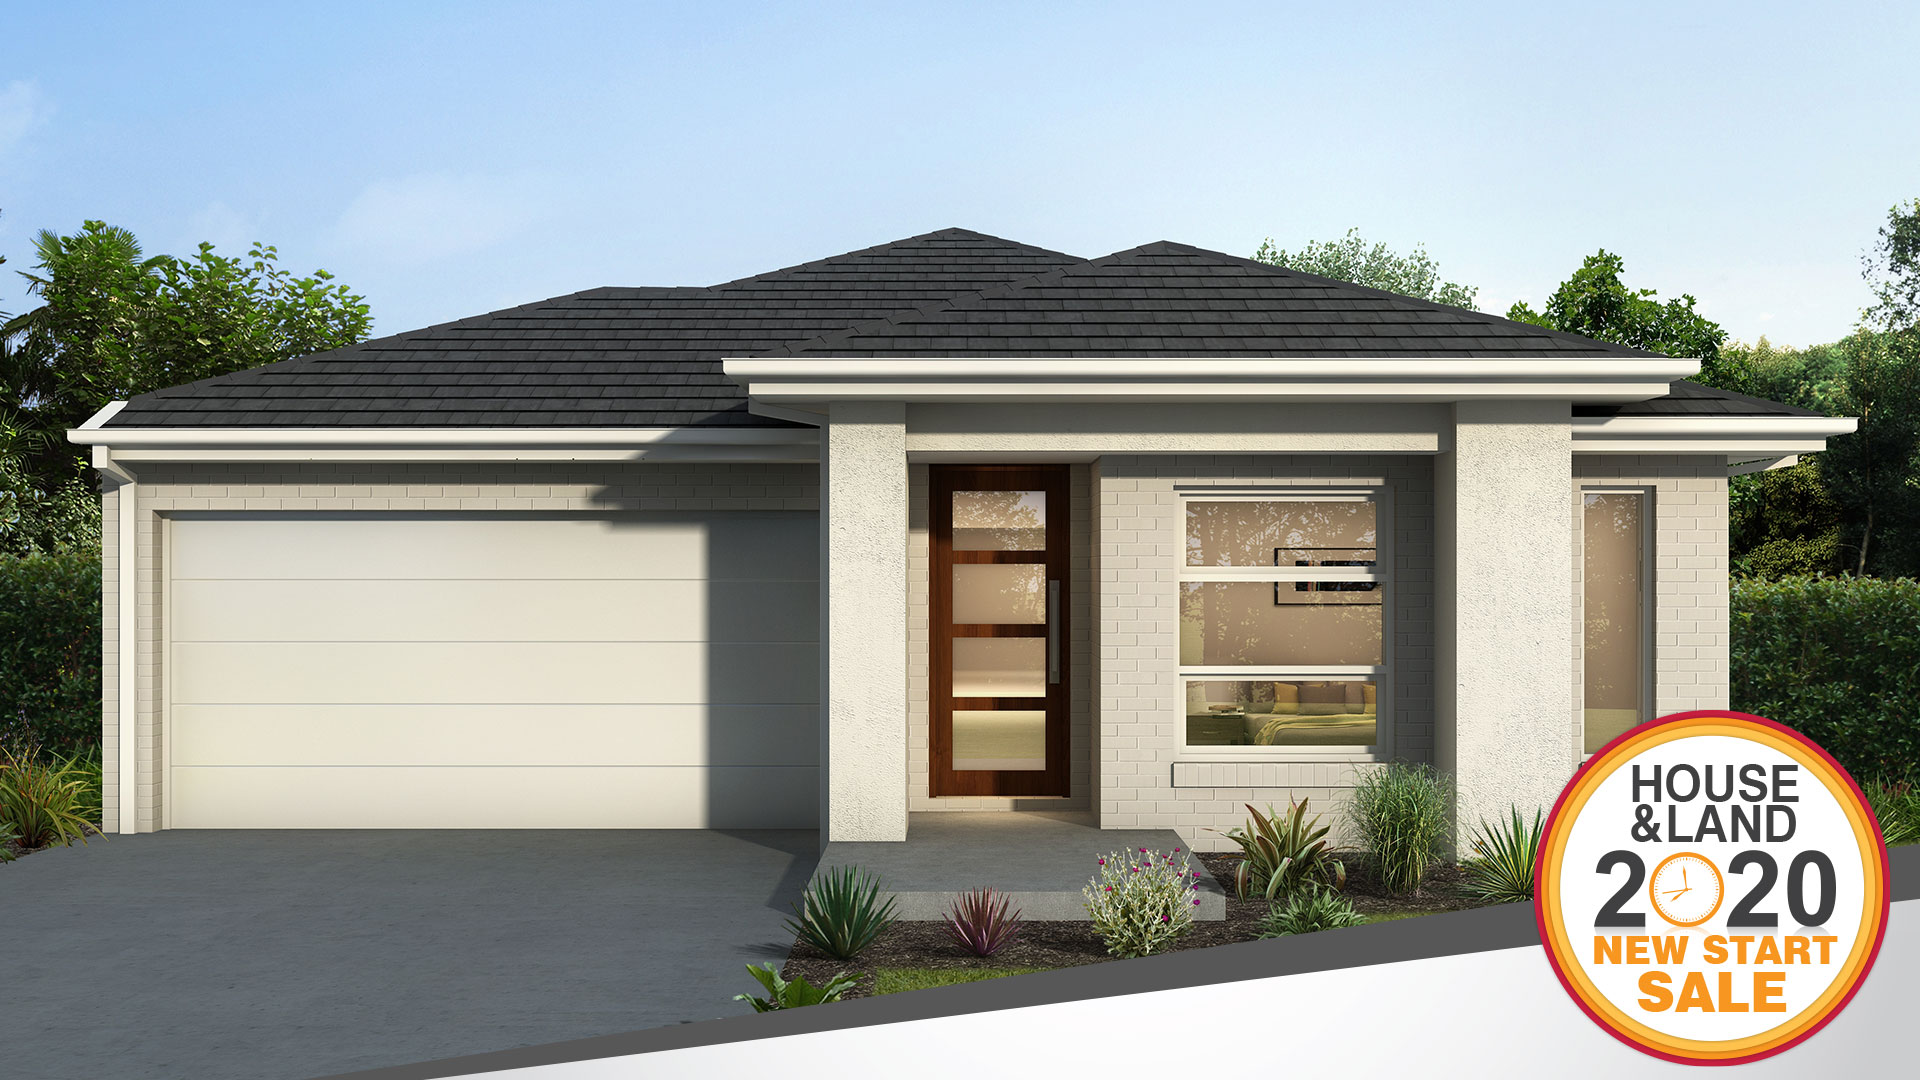 400 House Land New Start Sale WebsiteImages OranPark7060